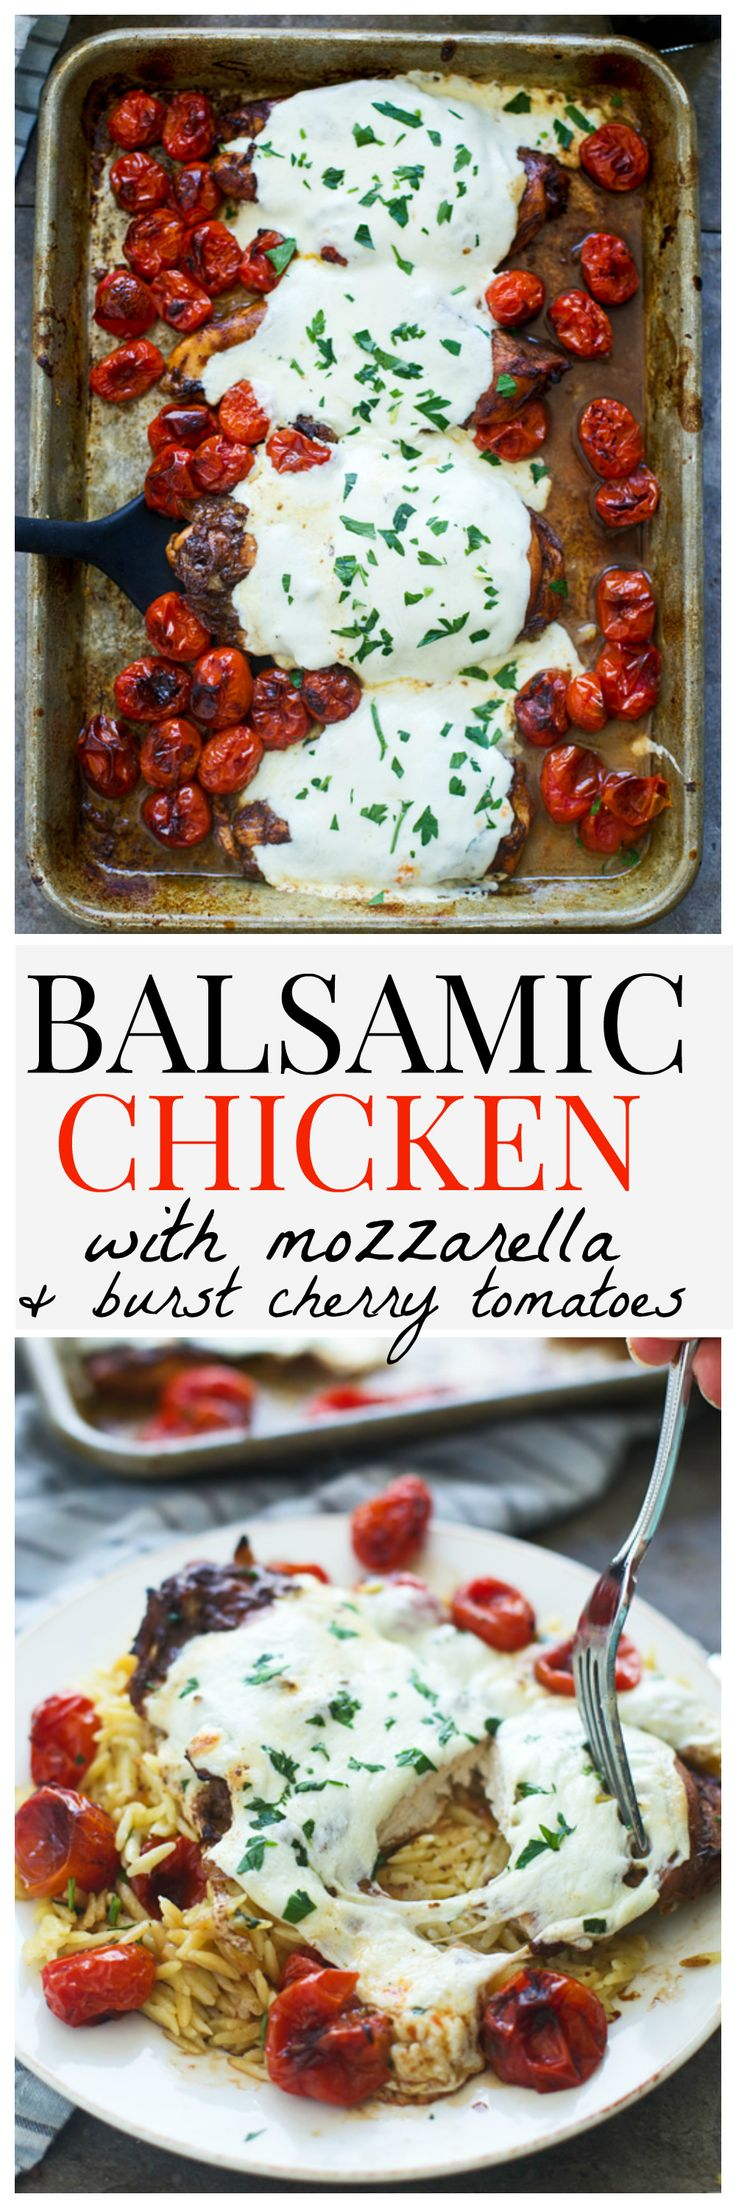 Easy dinners are the name of my game as of late, and this Balsamic Chicken with Mozzarella and Burst Cherry Tomatoes just shot straight up to the top of my ever-growing list of favorites. In the game of easy dinners, it really doesn't get much simpler tha